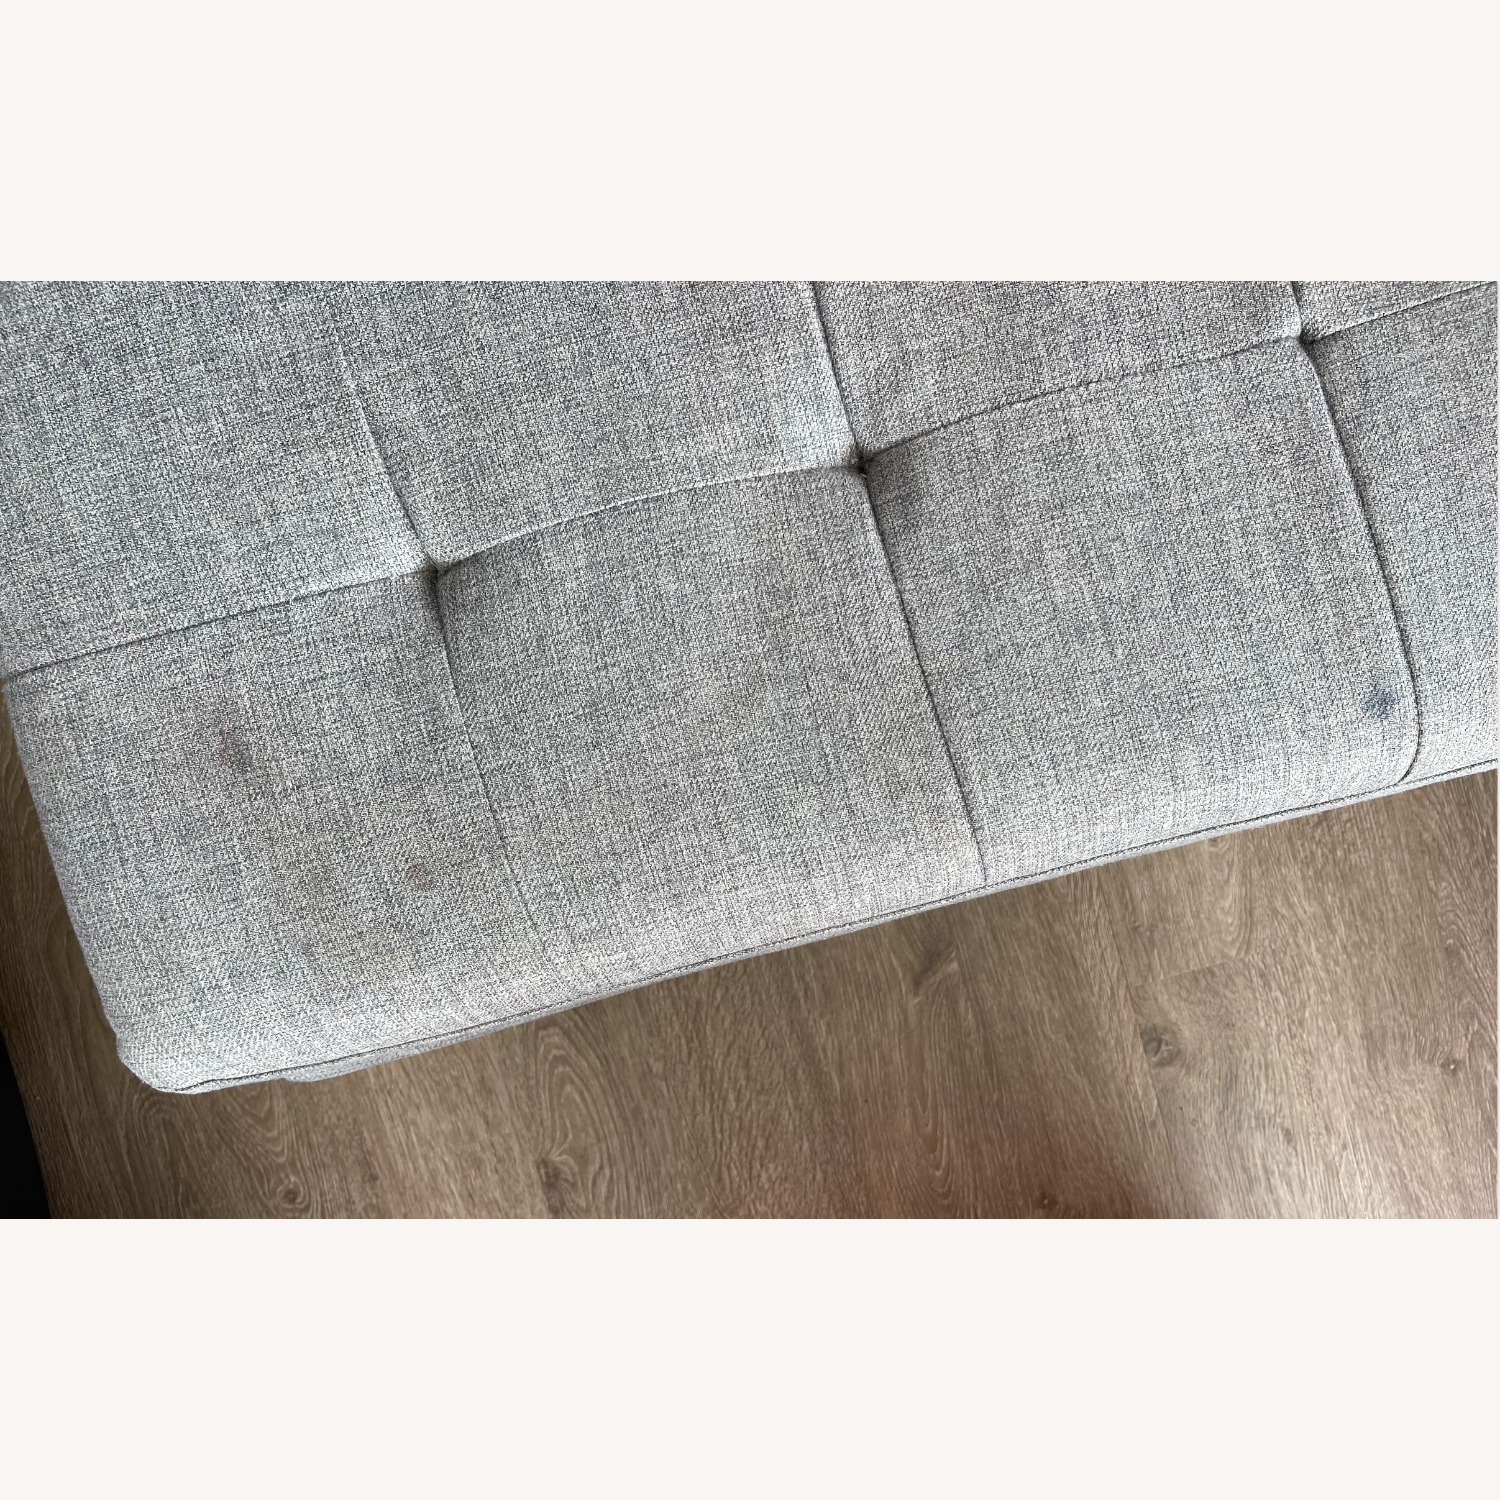 CB2 Ditto II Tufted Chaise Sectional Sofa Grey - image-5